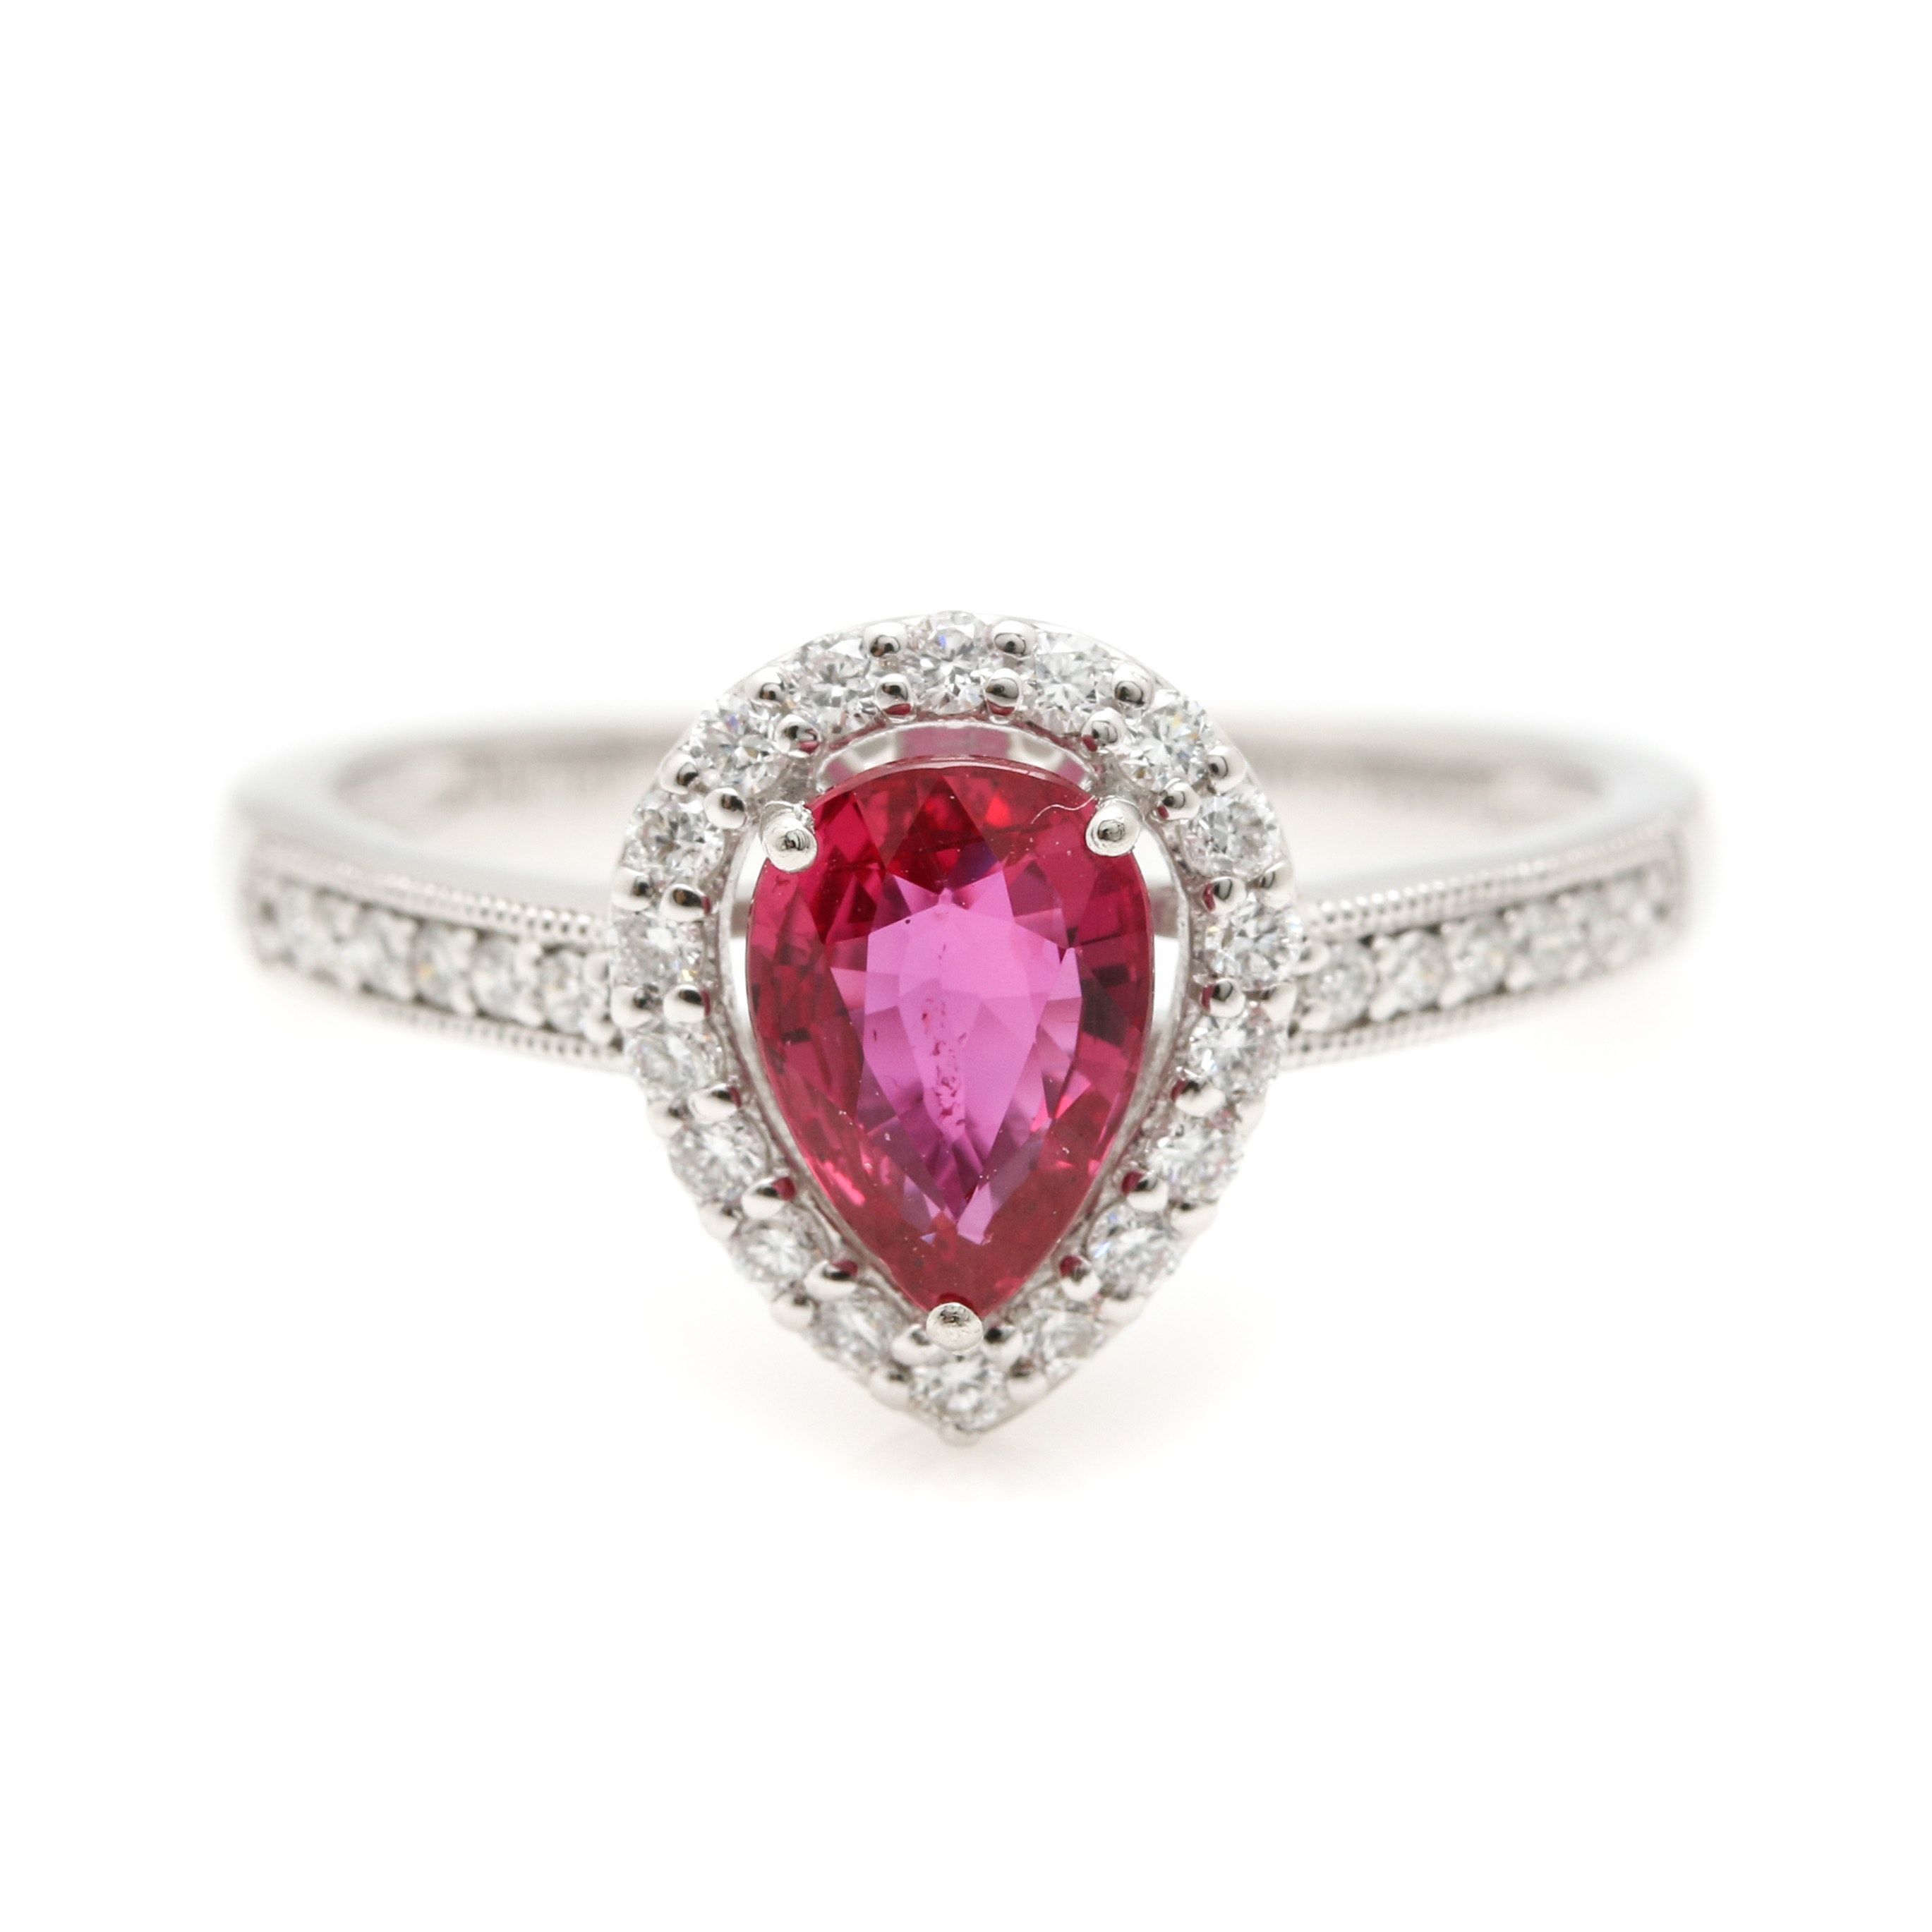 Platinum 1.08 CT Ruby and Diamond Ring Including GIA Certificate